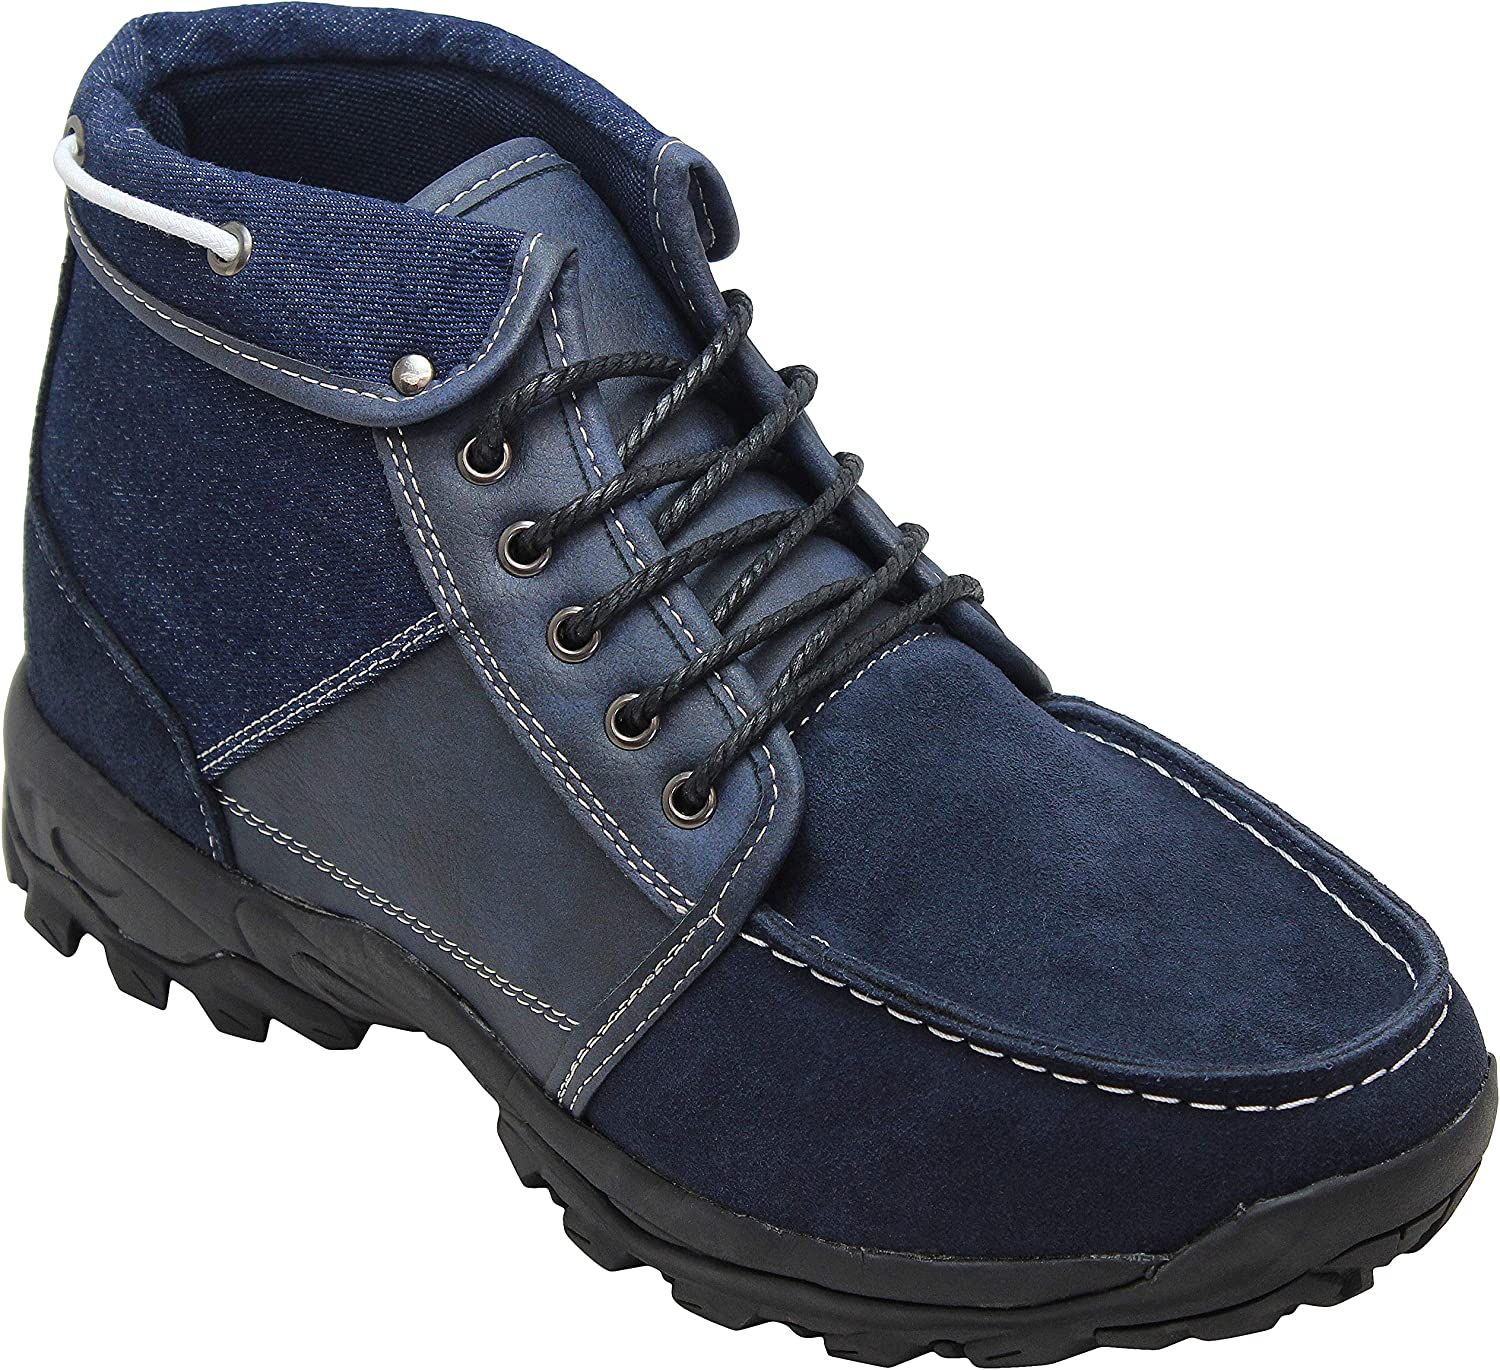 CALTO Men's Invisible Height Increasing Elevator shoes - bluee Canvas Suede Lace-up Hiking Style Ankle Boots - 3.3 Inches Taller - H224314